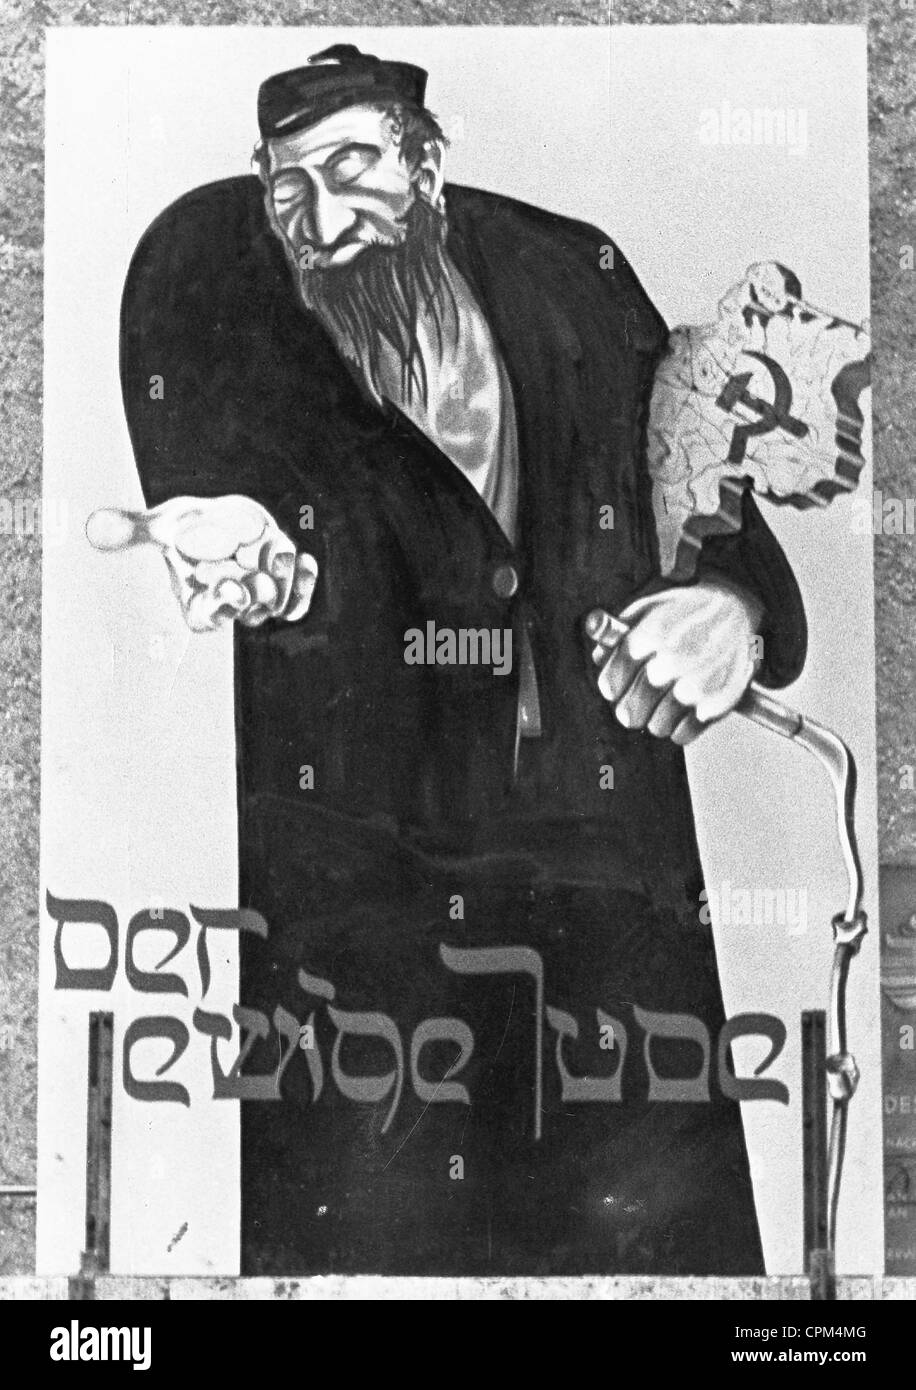 Propaganda poster for the film 'The Eternal Jew', 1940 - Stock Image